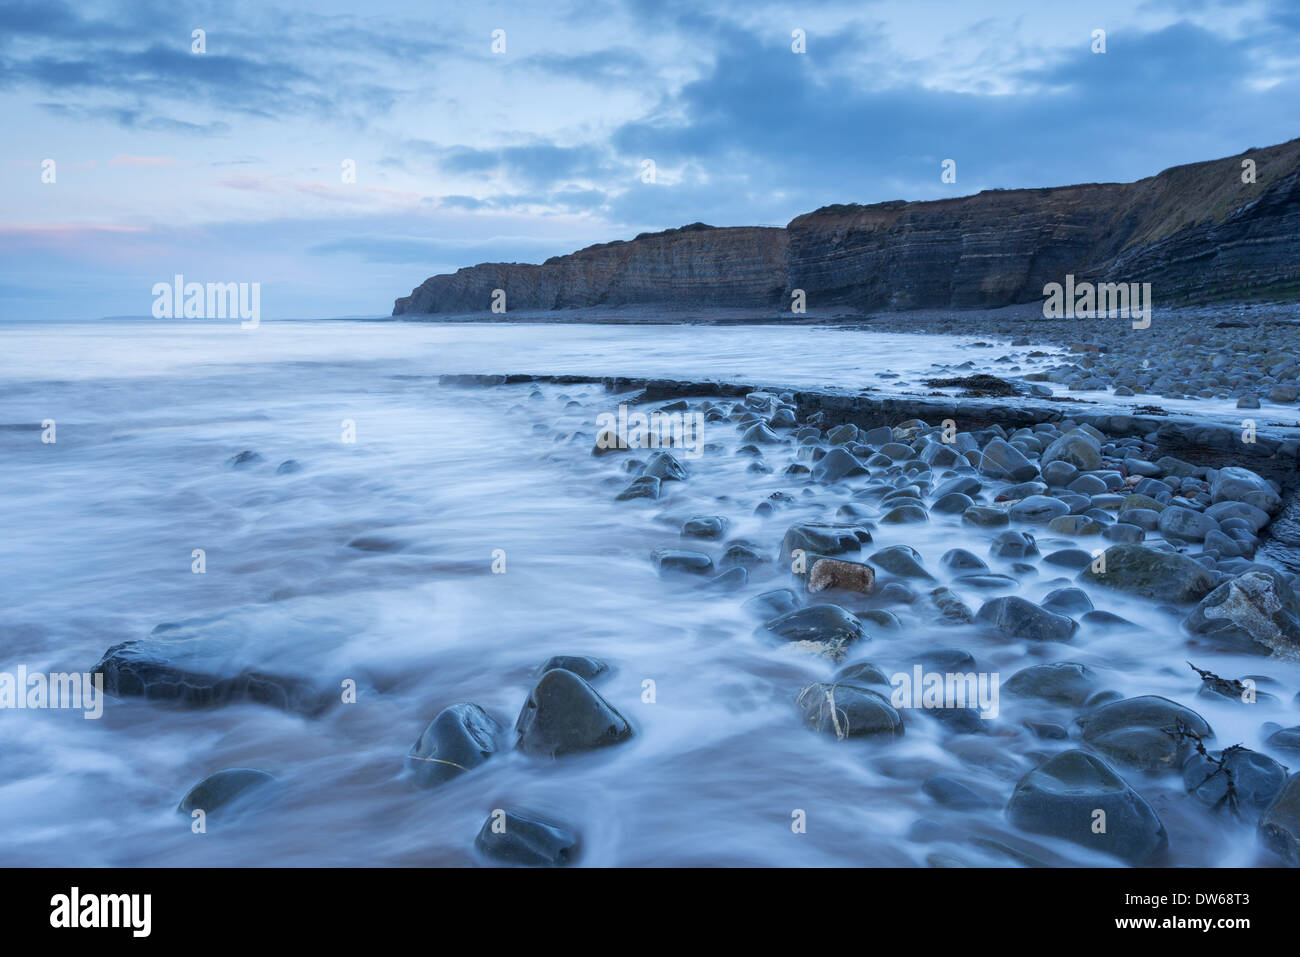 Incoming tide at Kilve Beach in Somerset, England. Winter (January) 2014 - Stock Image